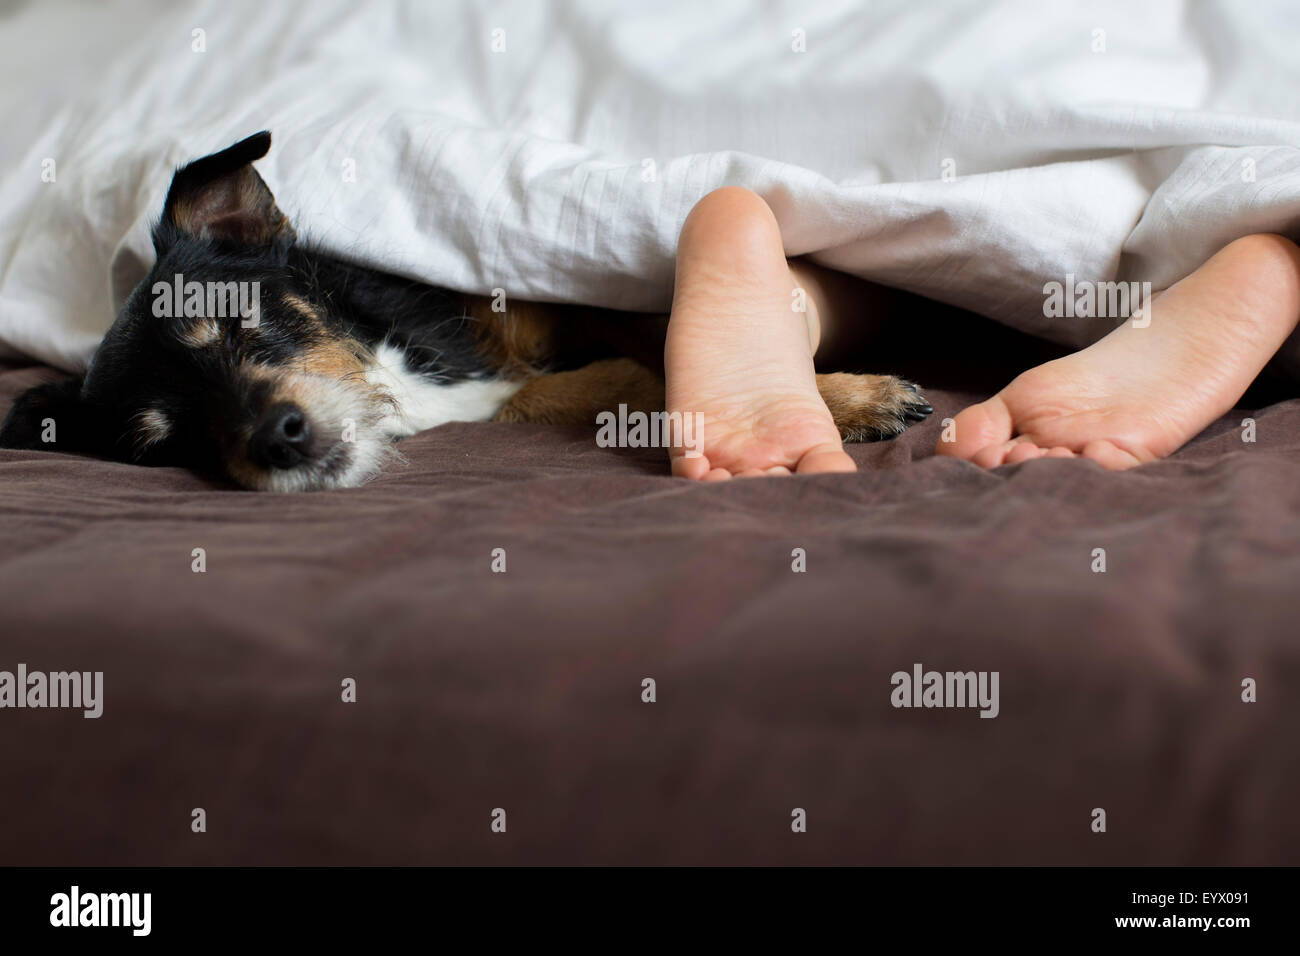 Child sleeping with dog in bed. - Stock Image